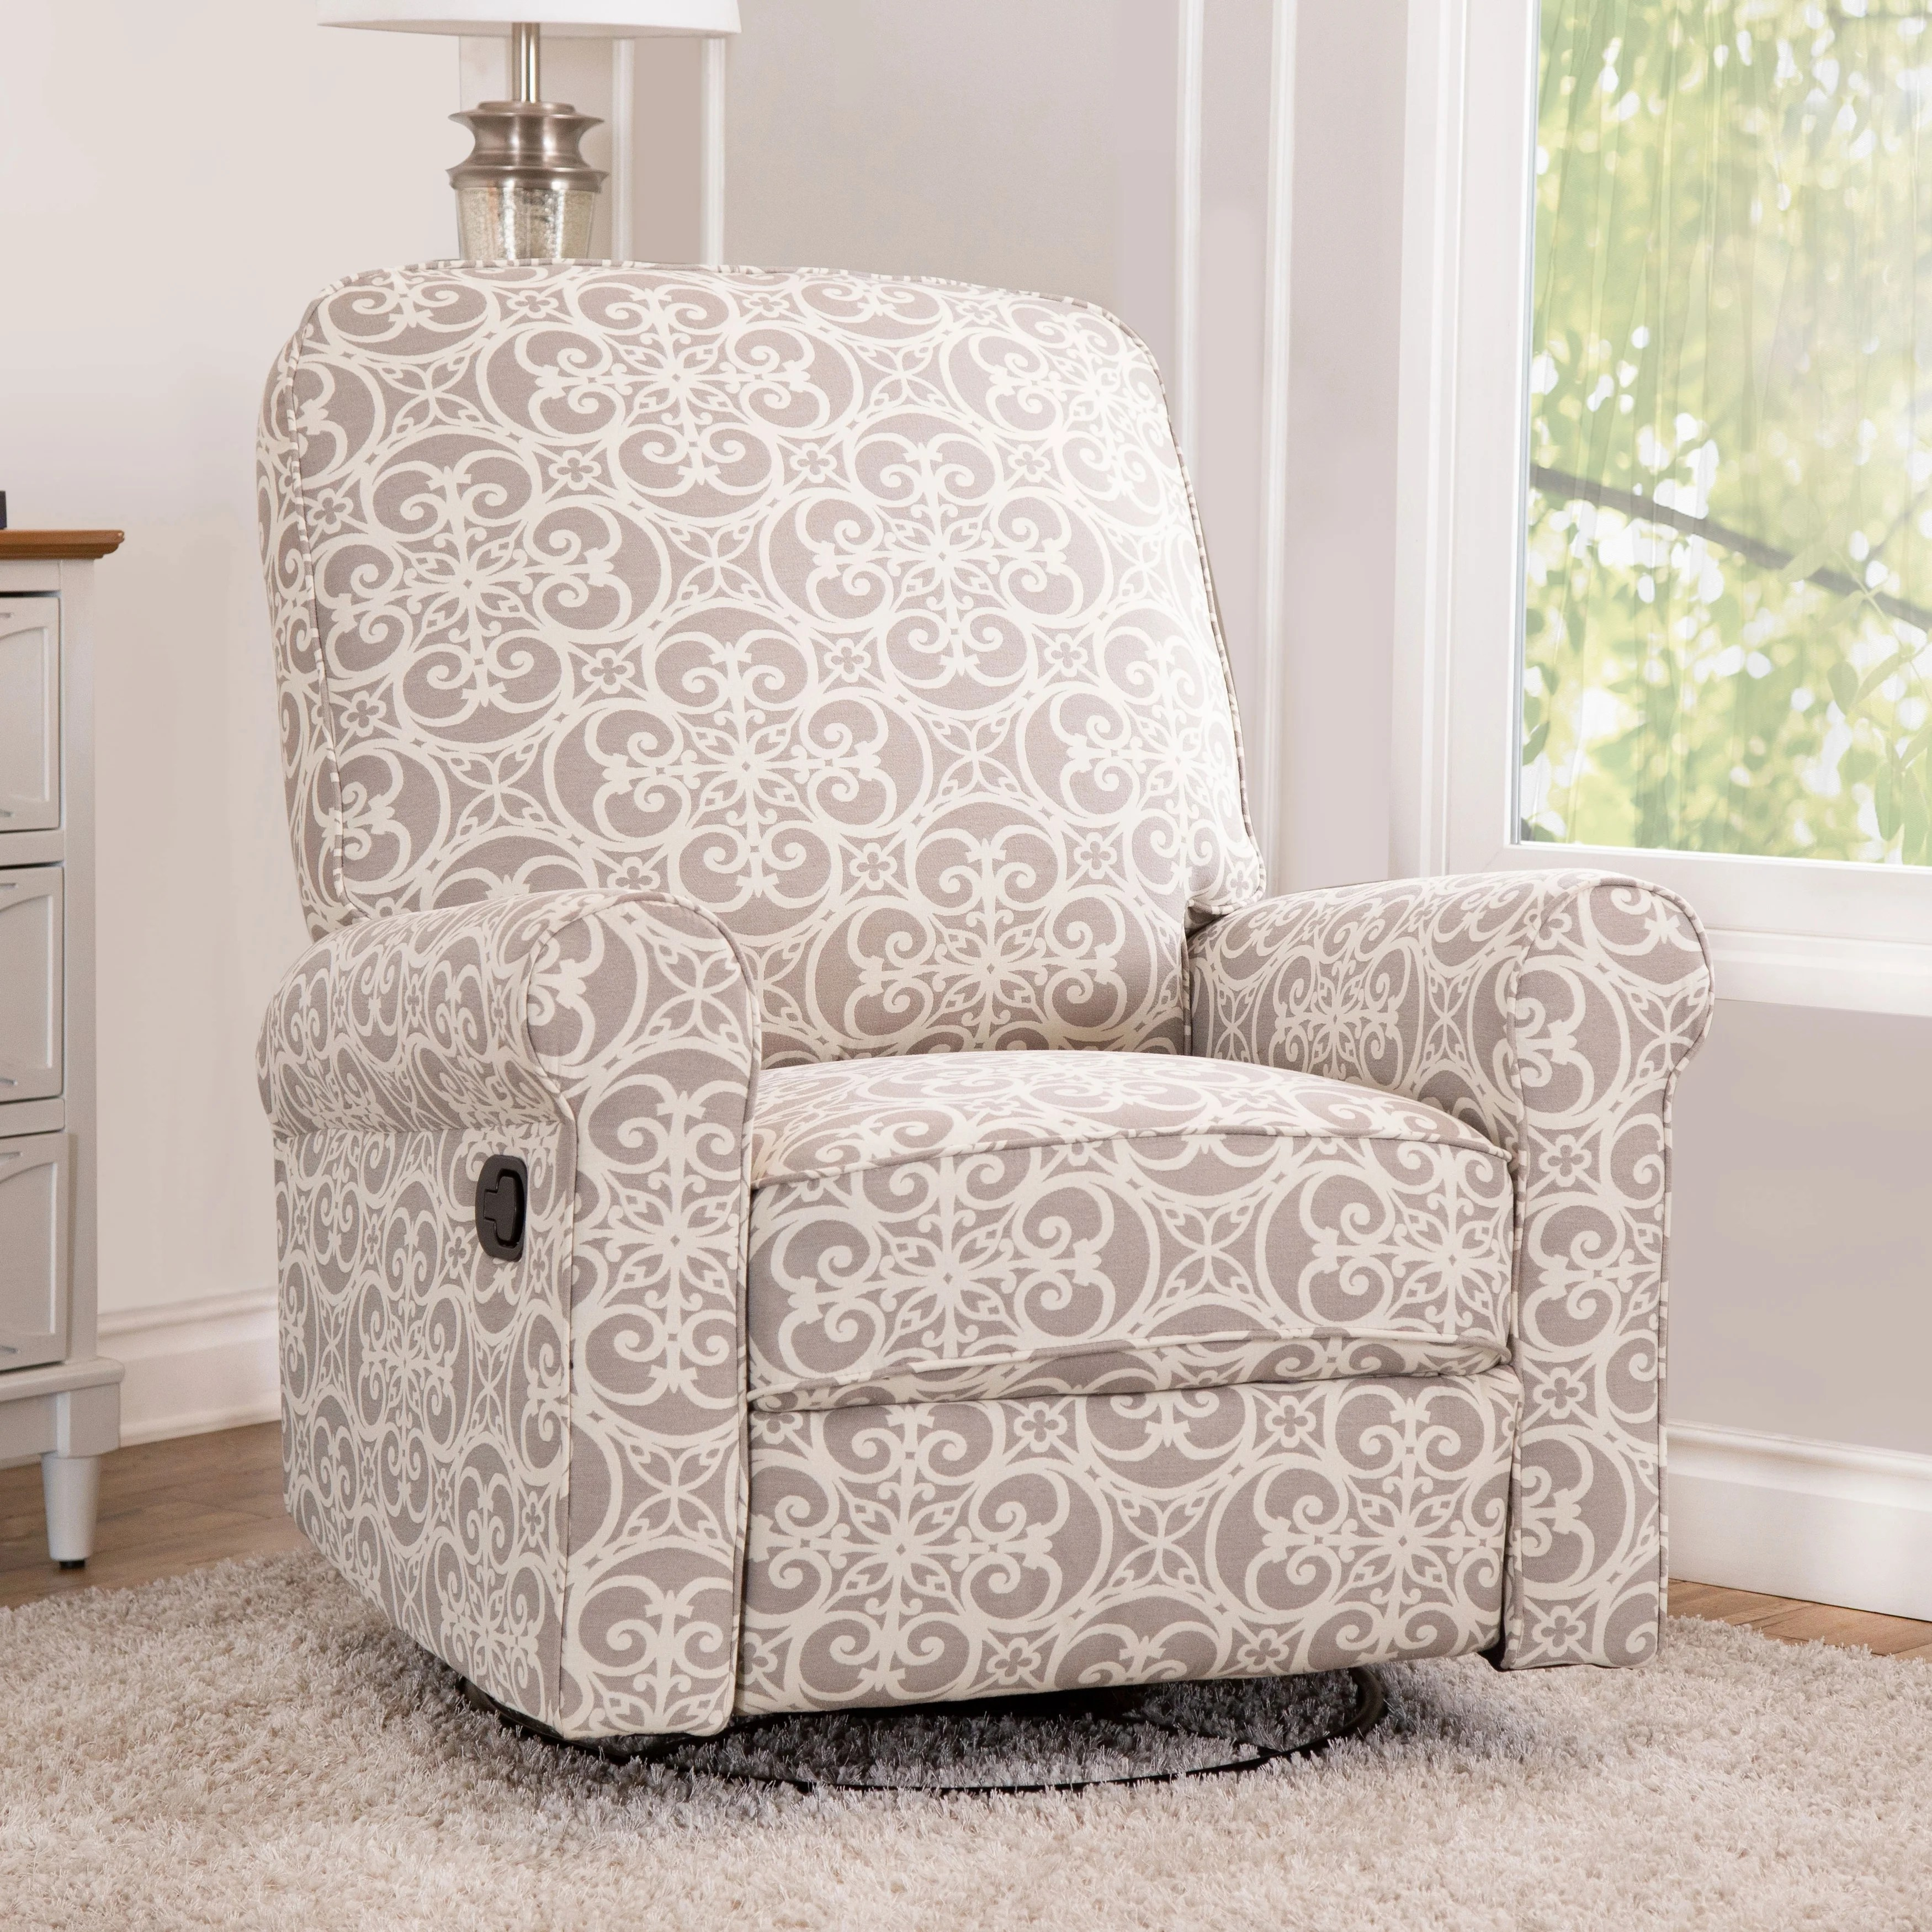 glider recliner chair spandex covers vs polyester shop abbyson perth grey floral fabric swivel